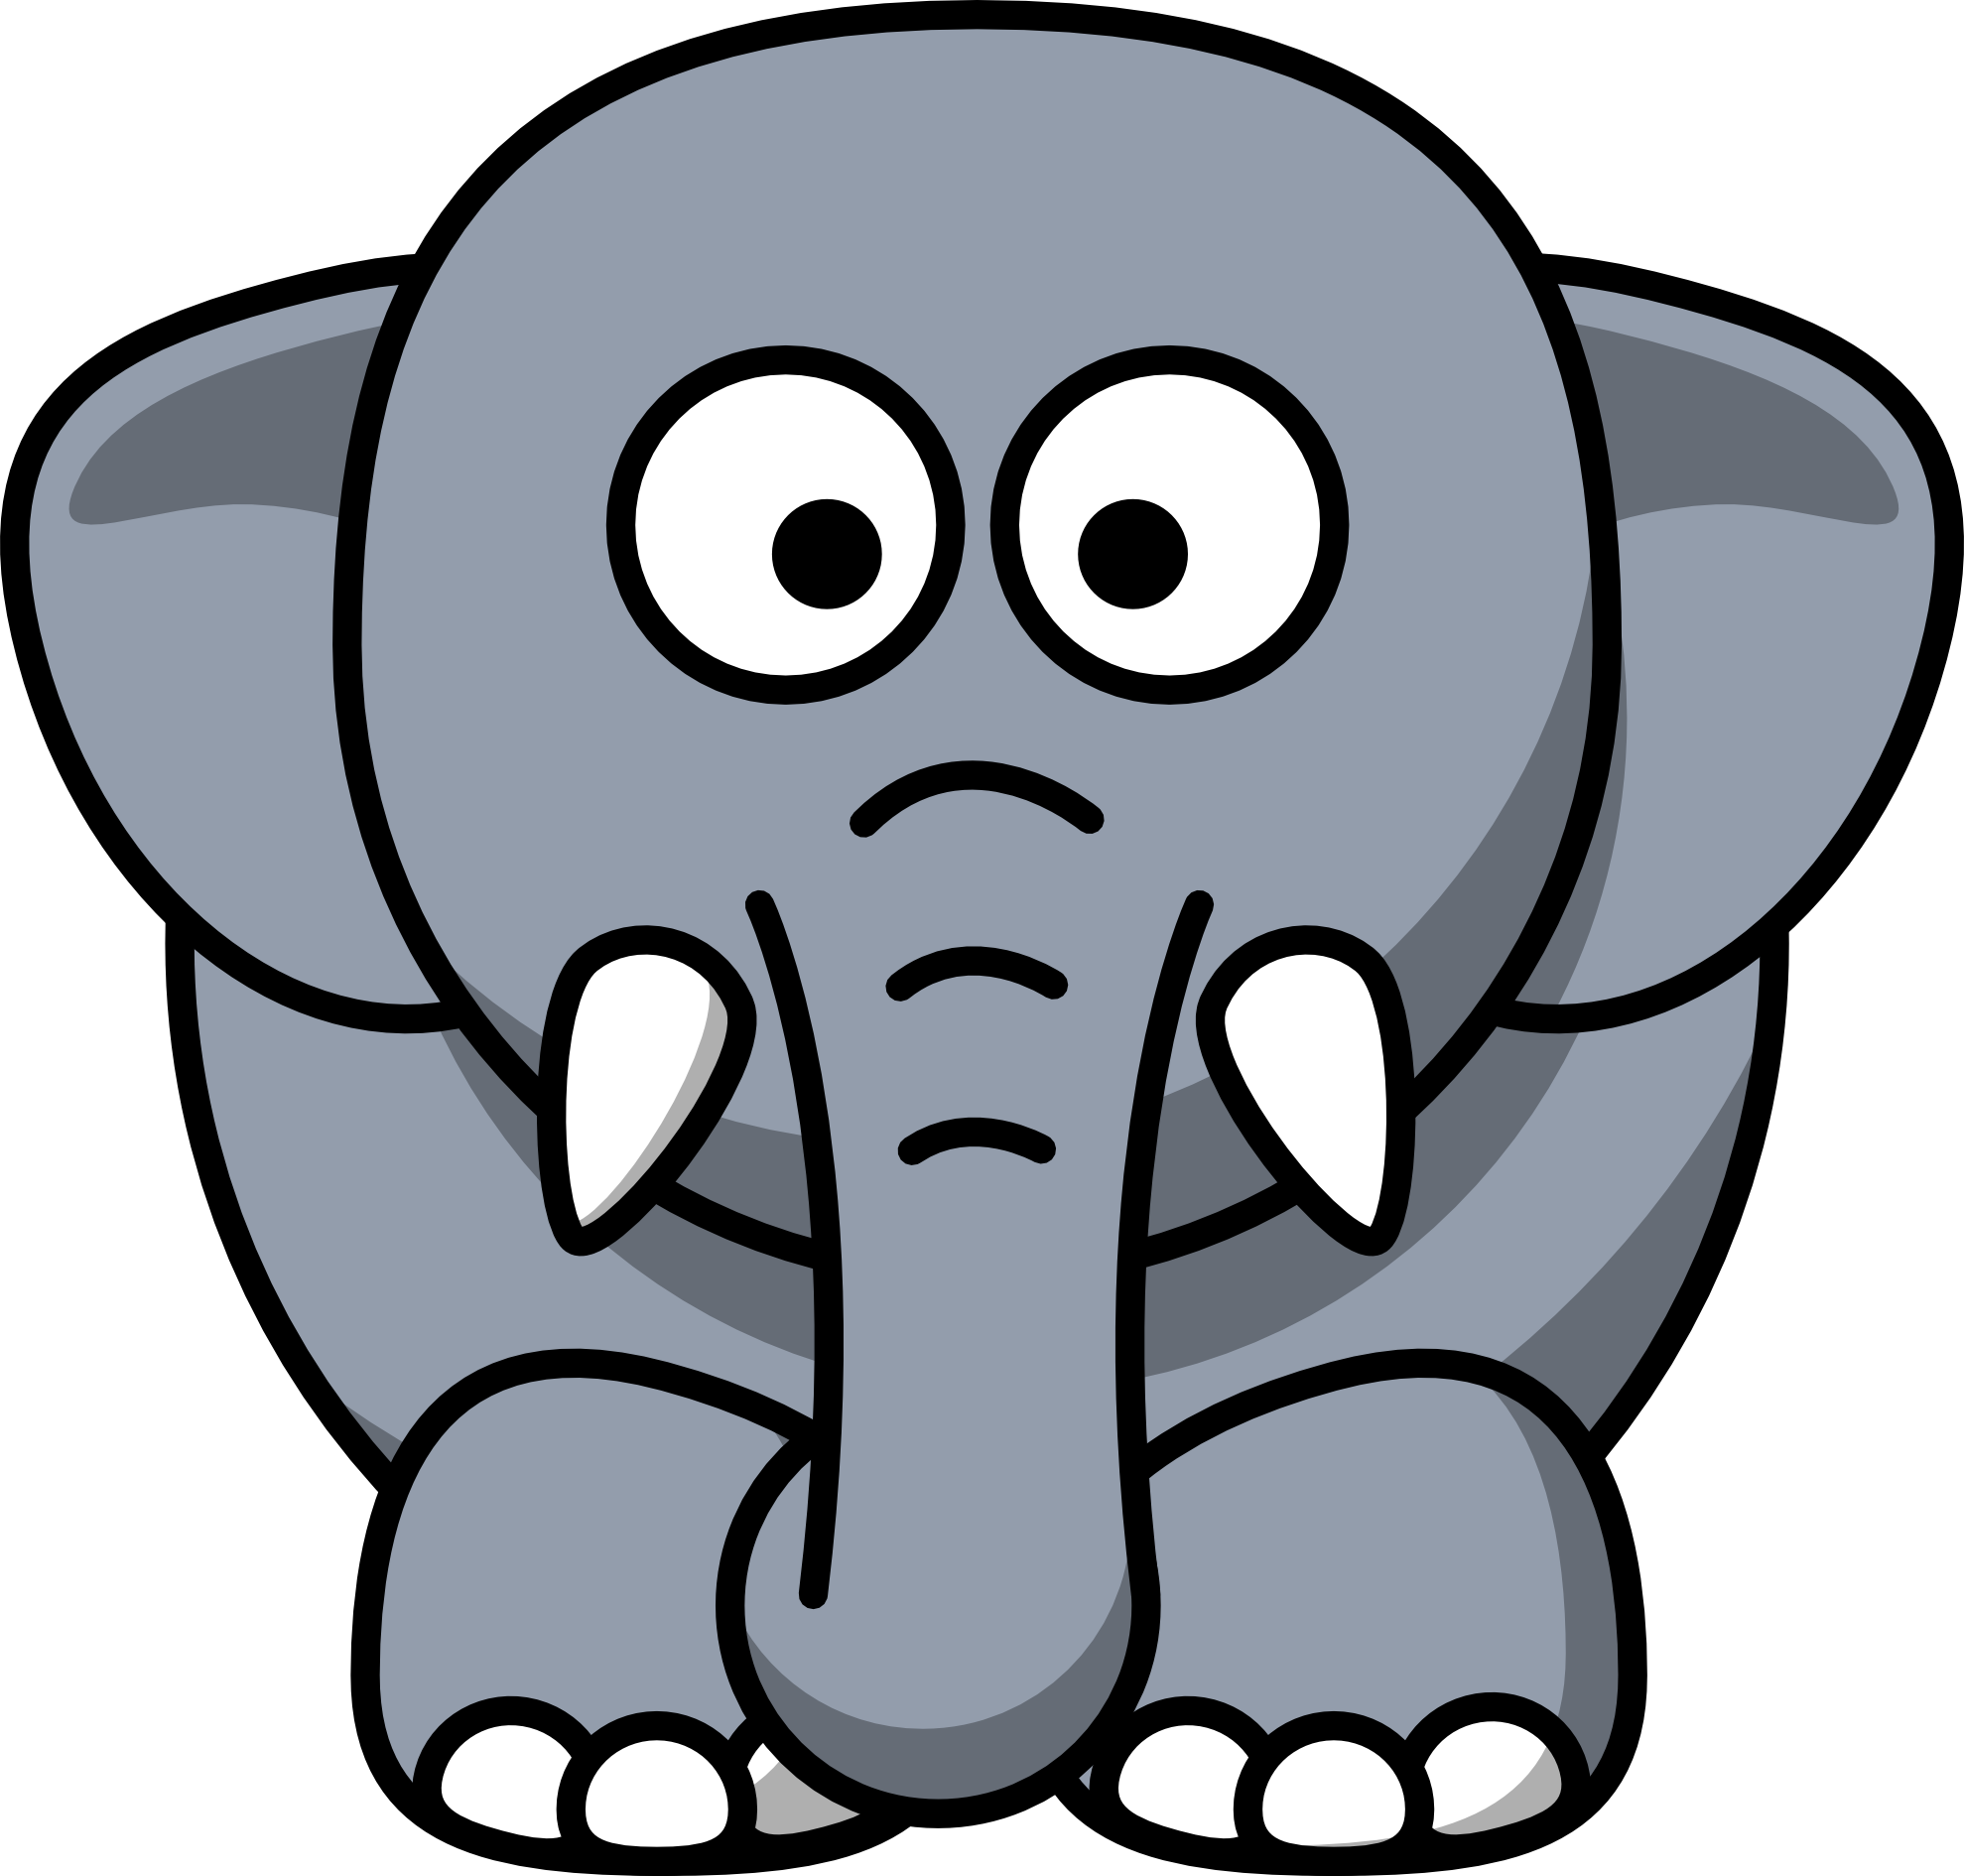 Elephant clipart copyright free clipart royalty free library Free Elephants Images, Download Free Clip Art, Free Clip Art on ... clipart royalty free library